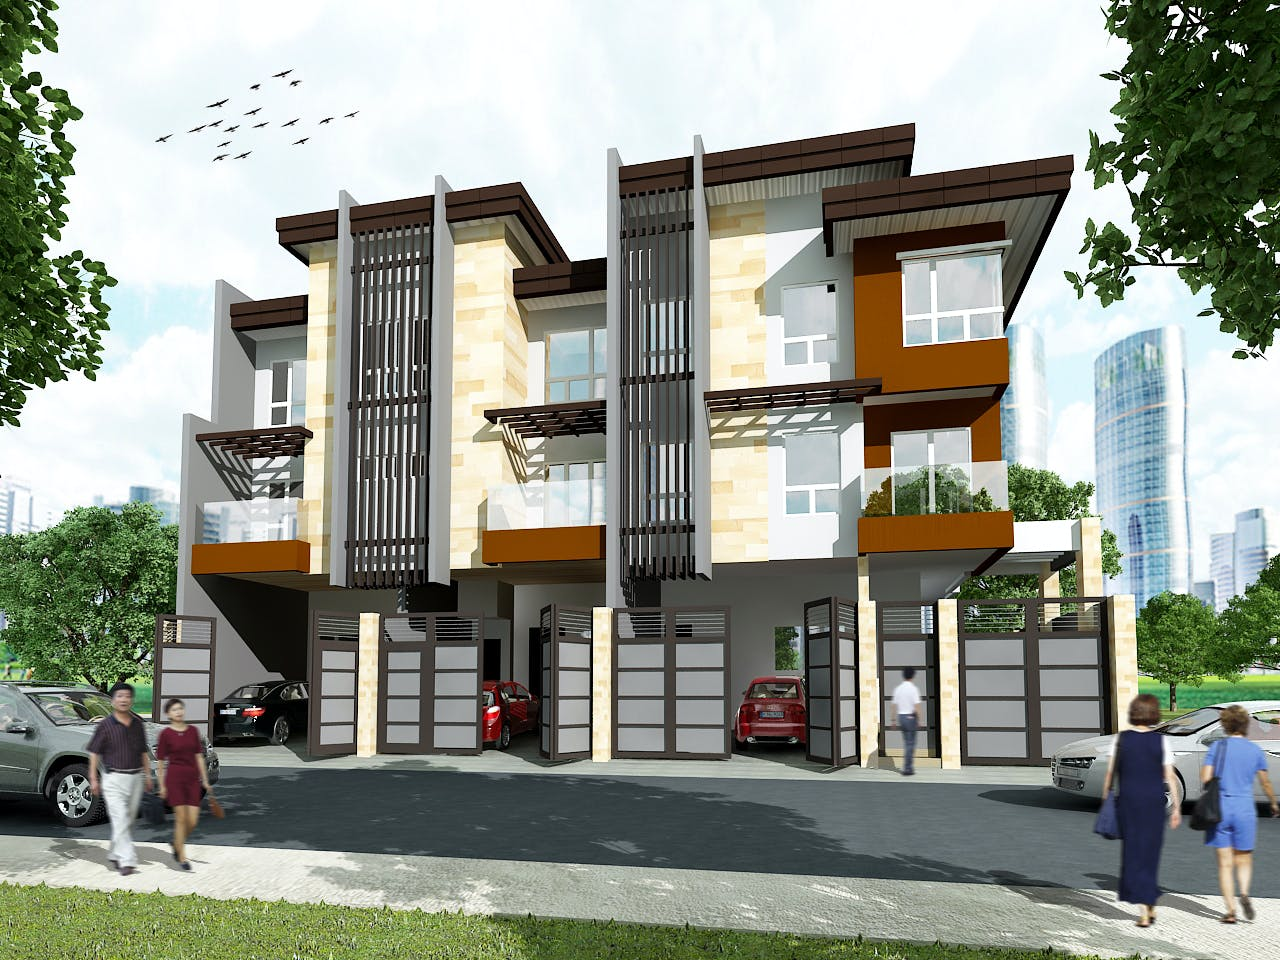 3 storey 3 unit townhouse rabbi chester miranda archinect for Townhouse design philippines